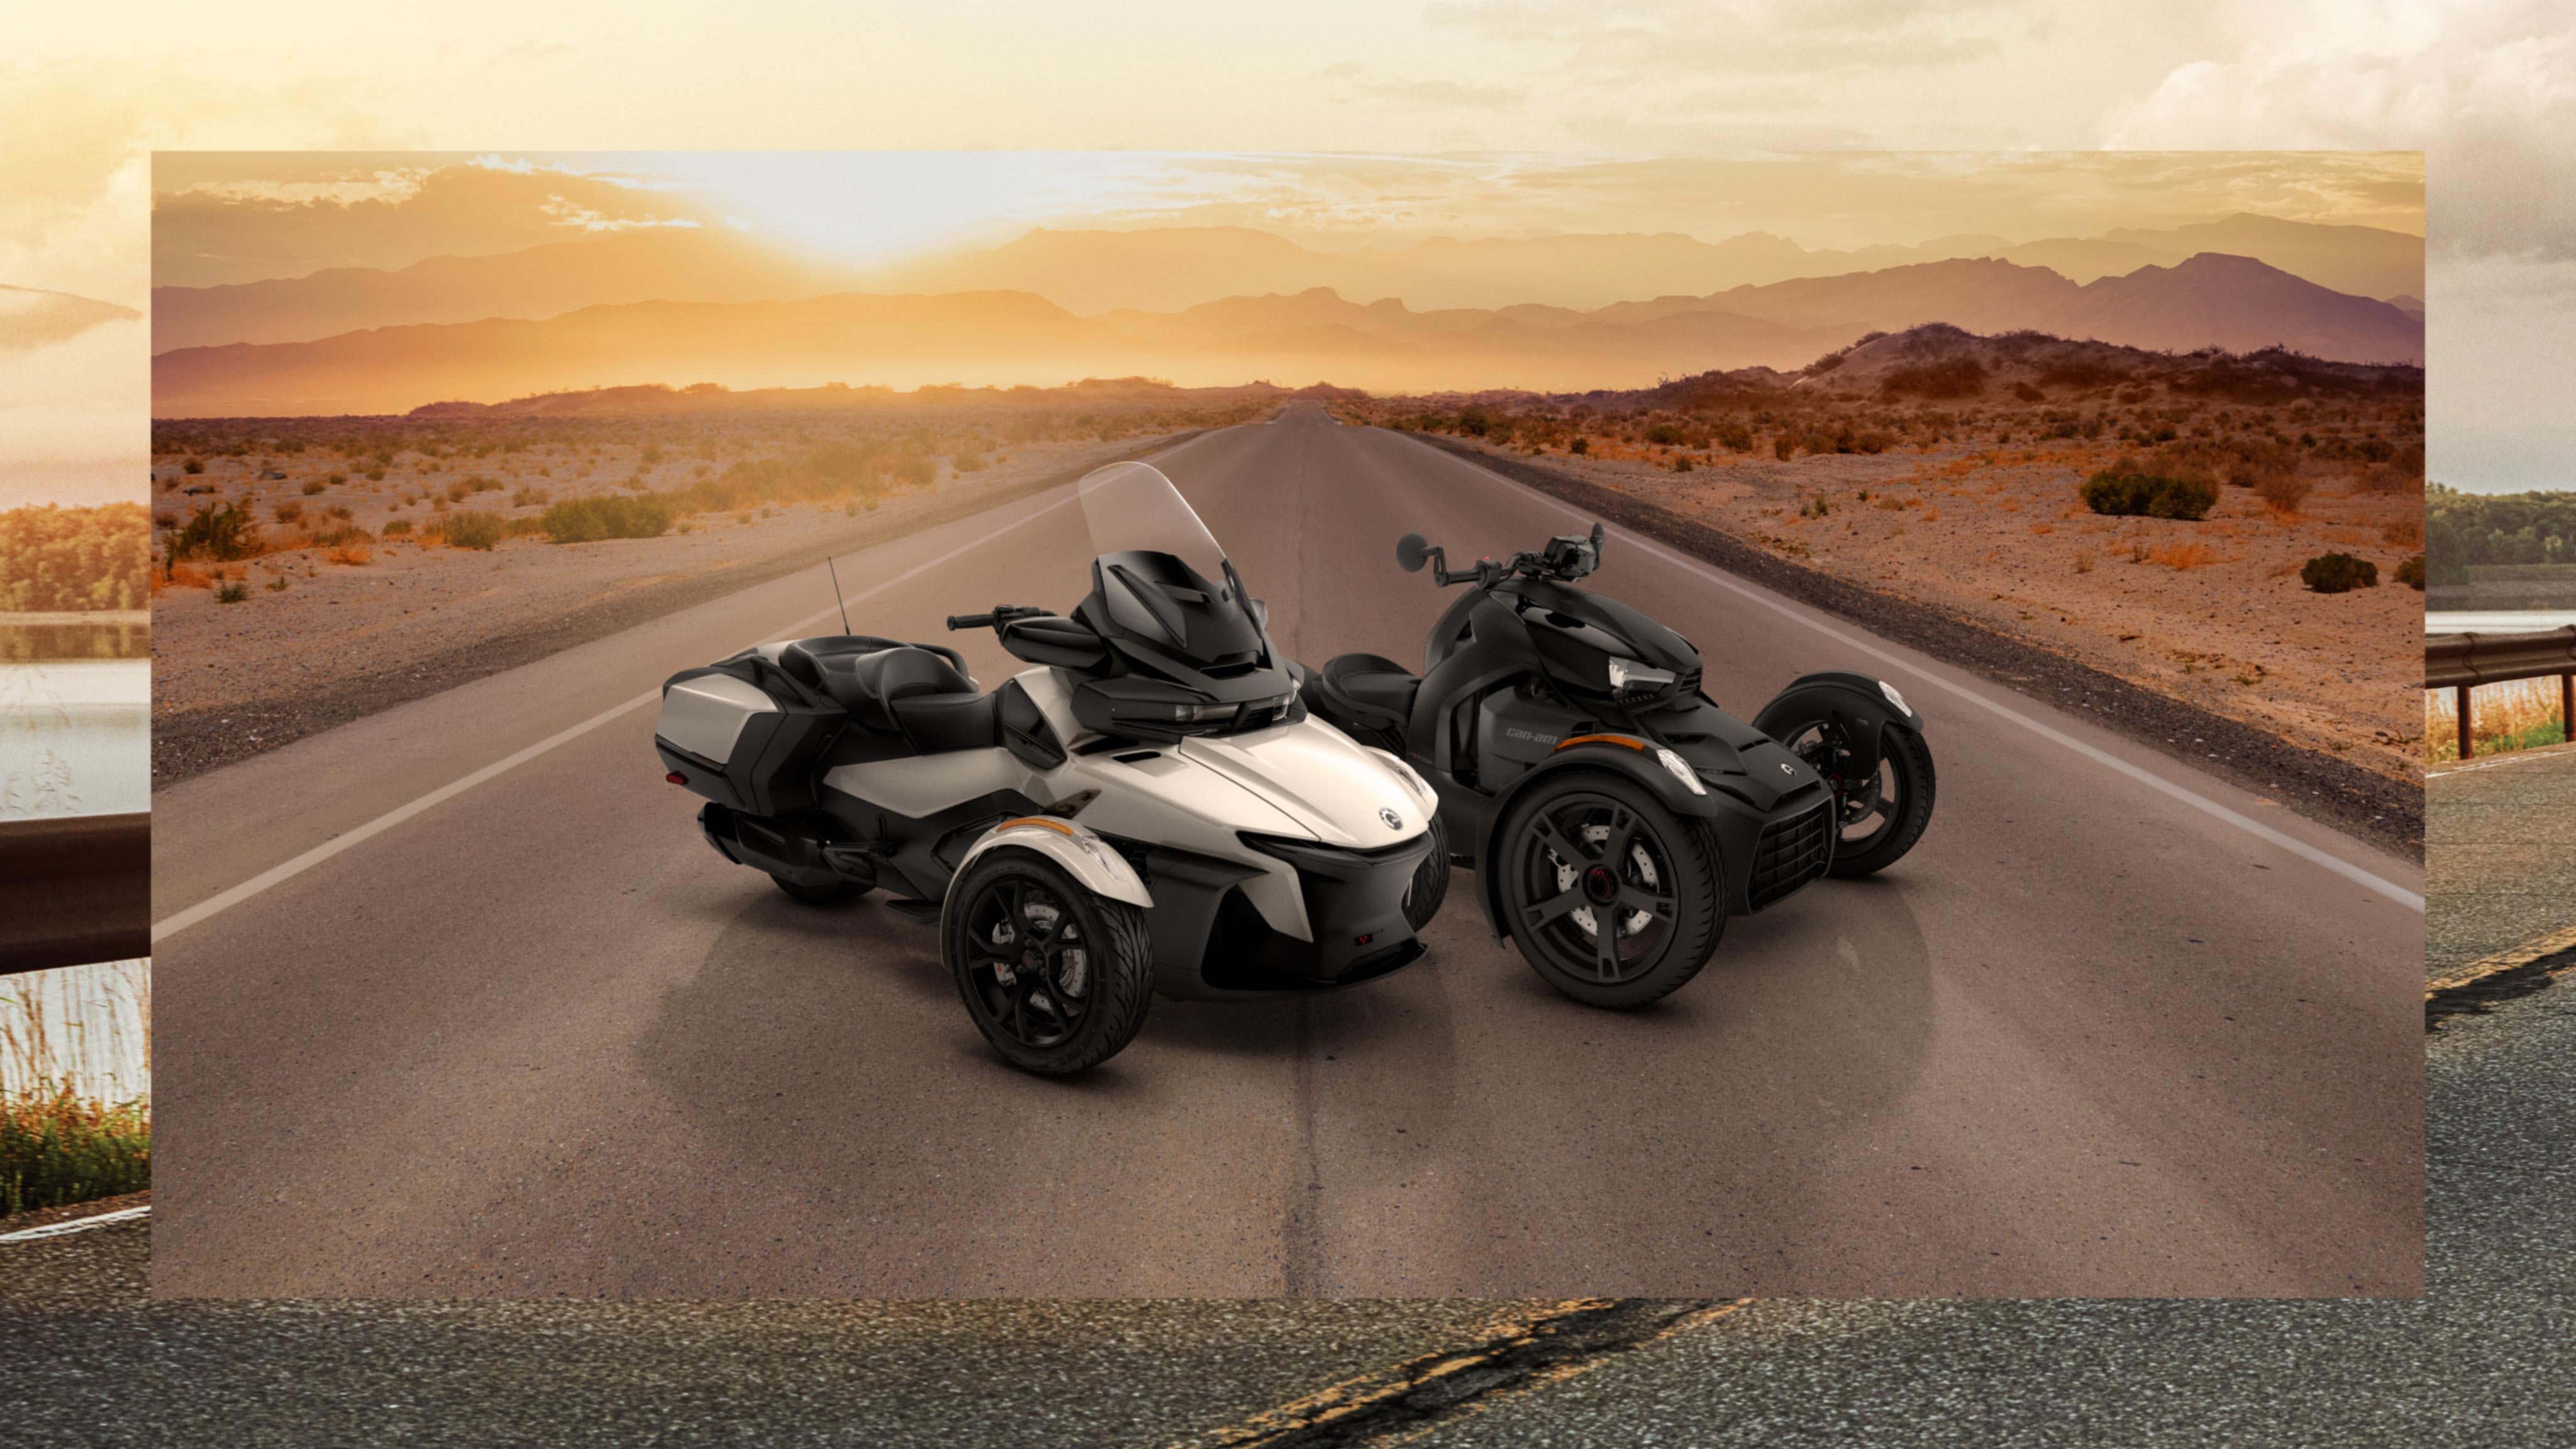 2020 Can-Am On-Road models at night